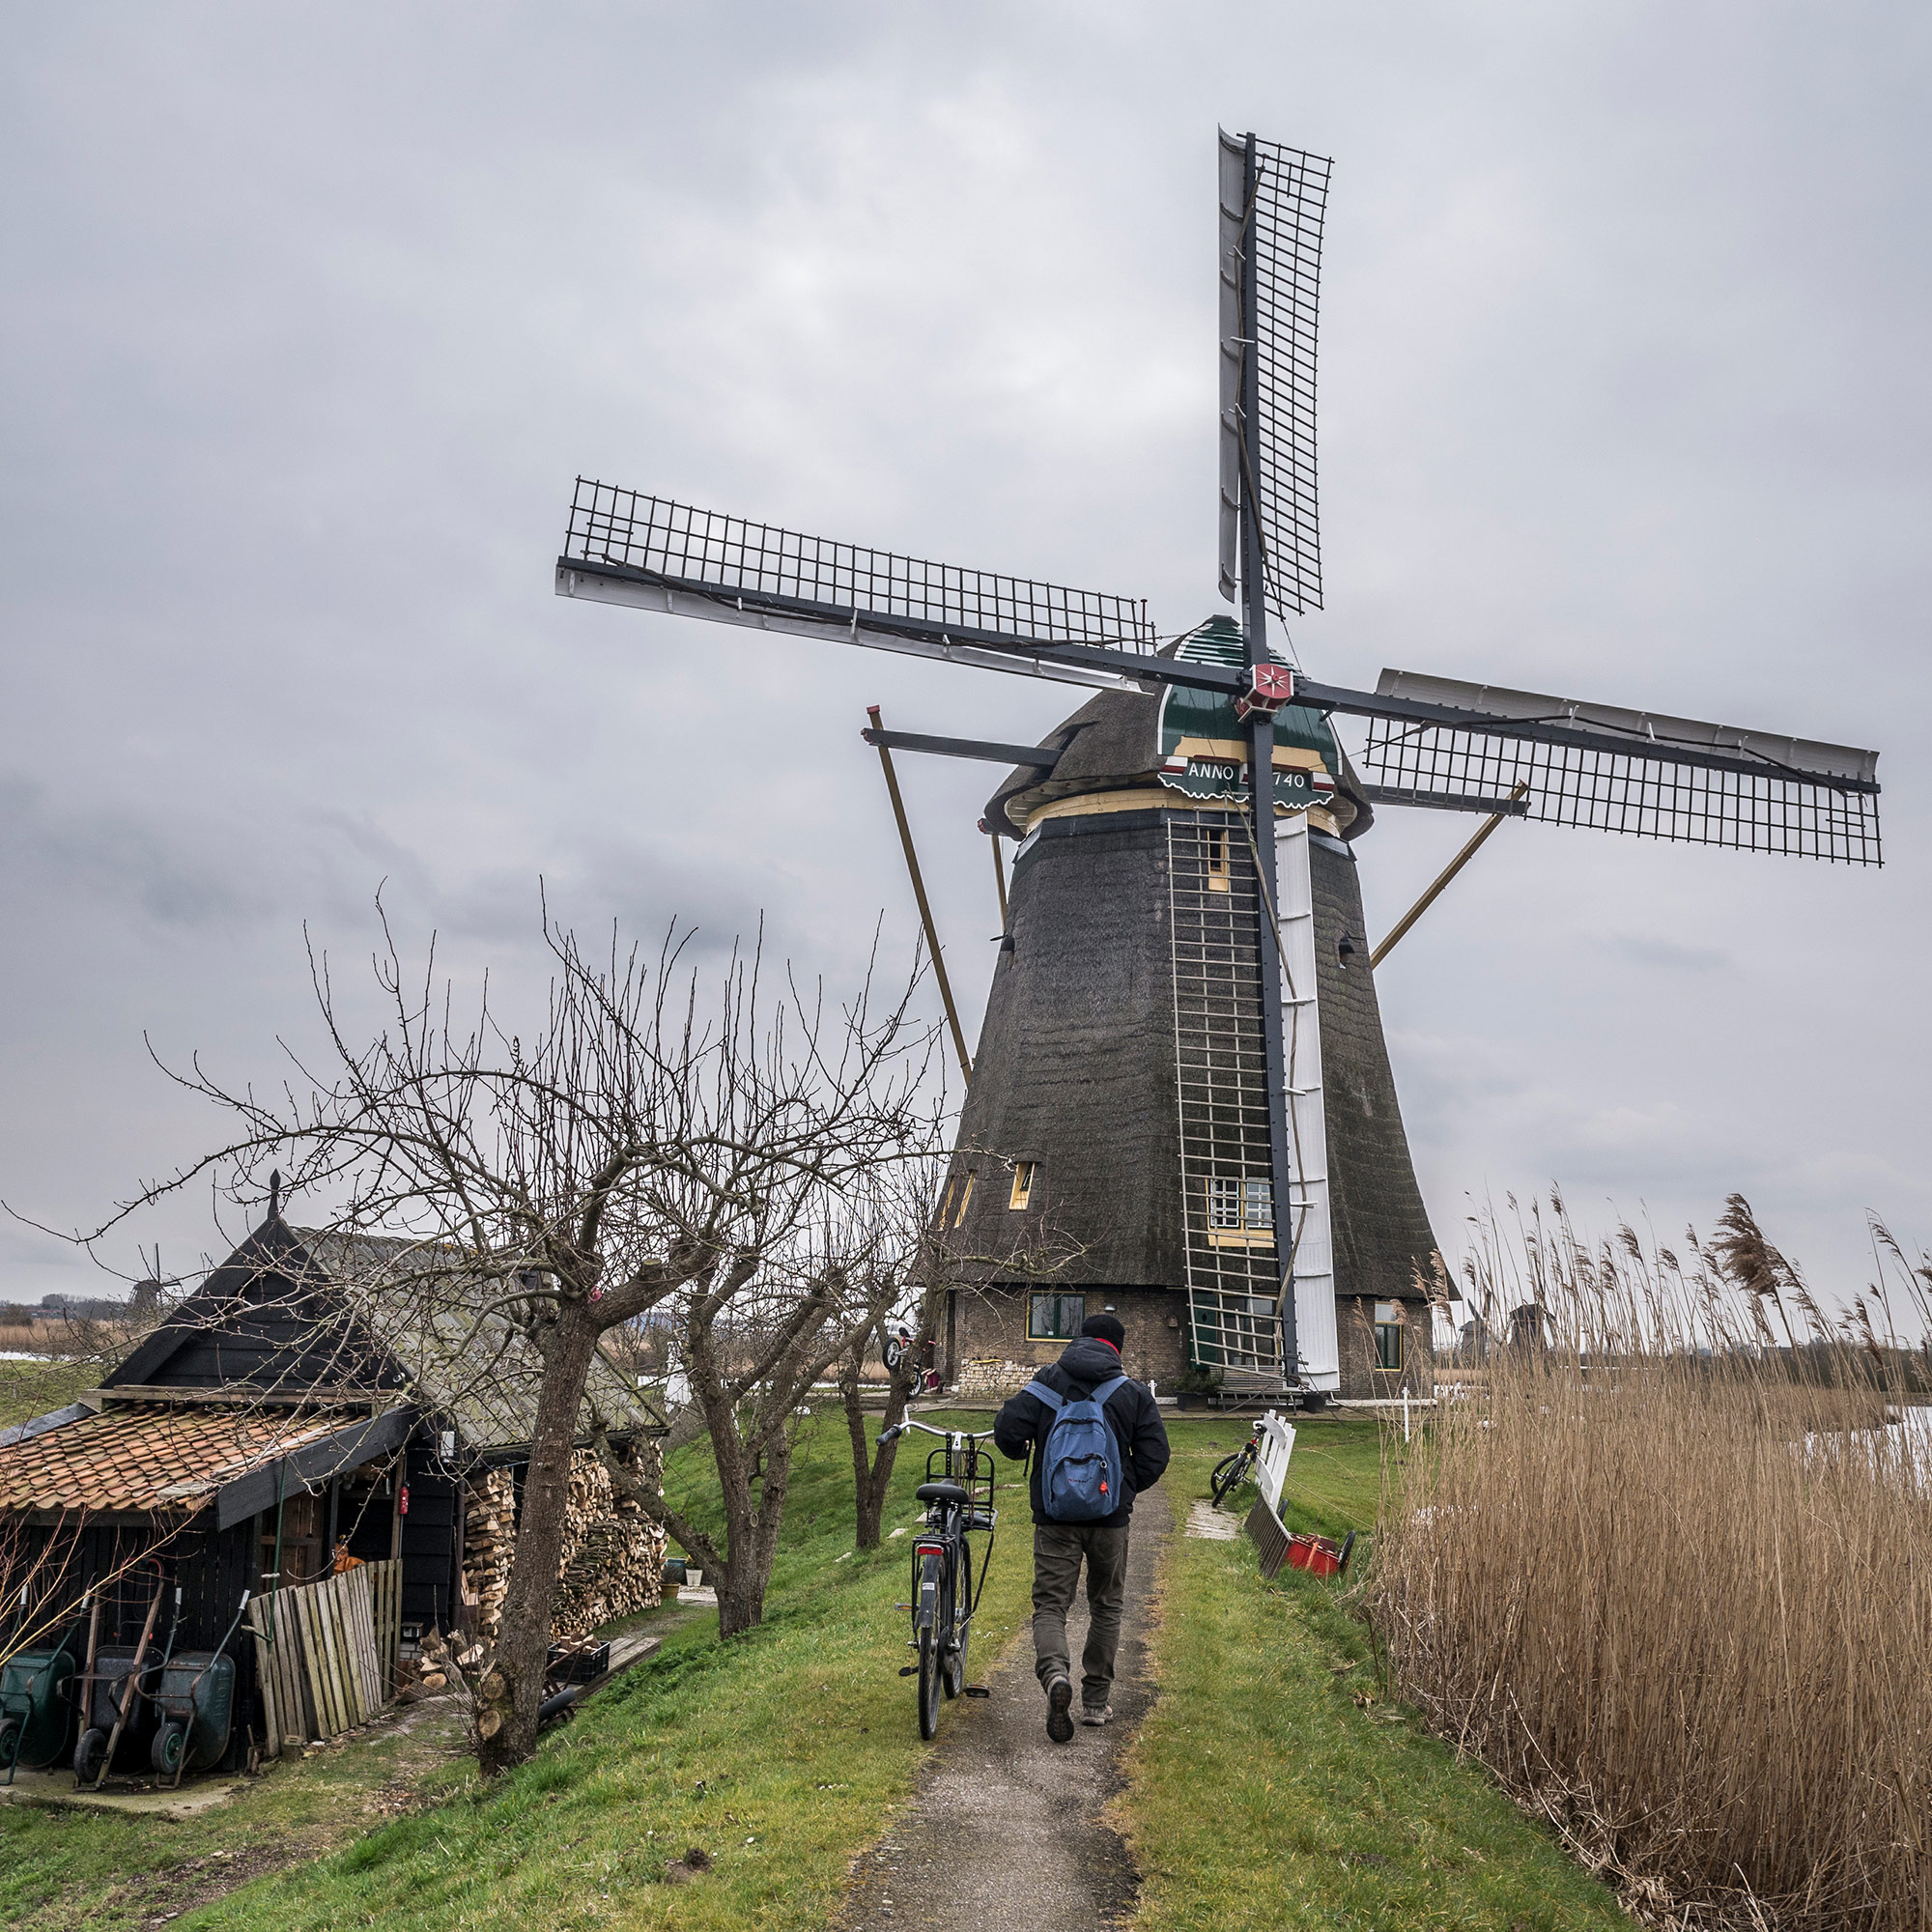 Peter Paul Klapwijk lives with his family in a historic windmill at Kinderdijk. He is a licensed miller and gives tours of the UNESCO site next door. (Photo by Joris van Gennip/GroundTruth)